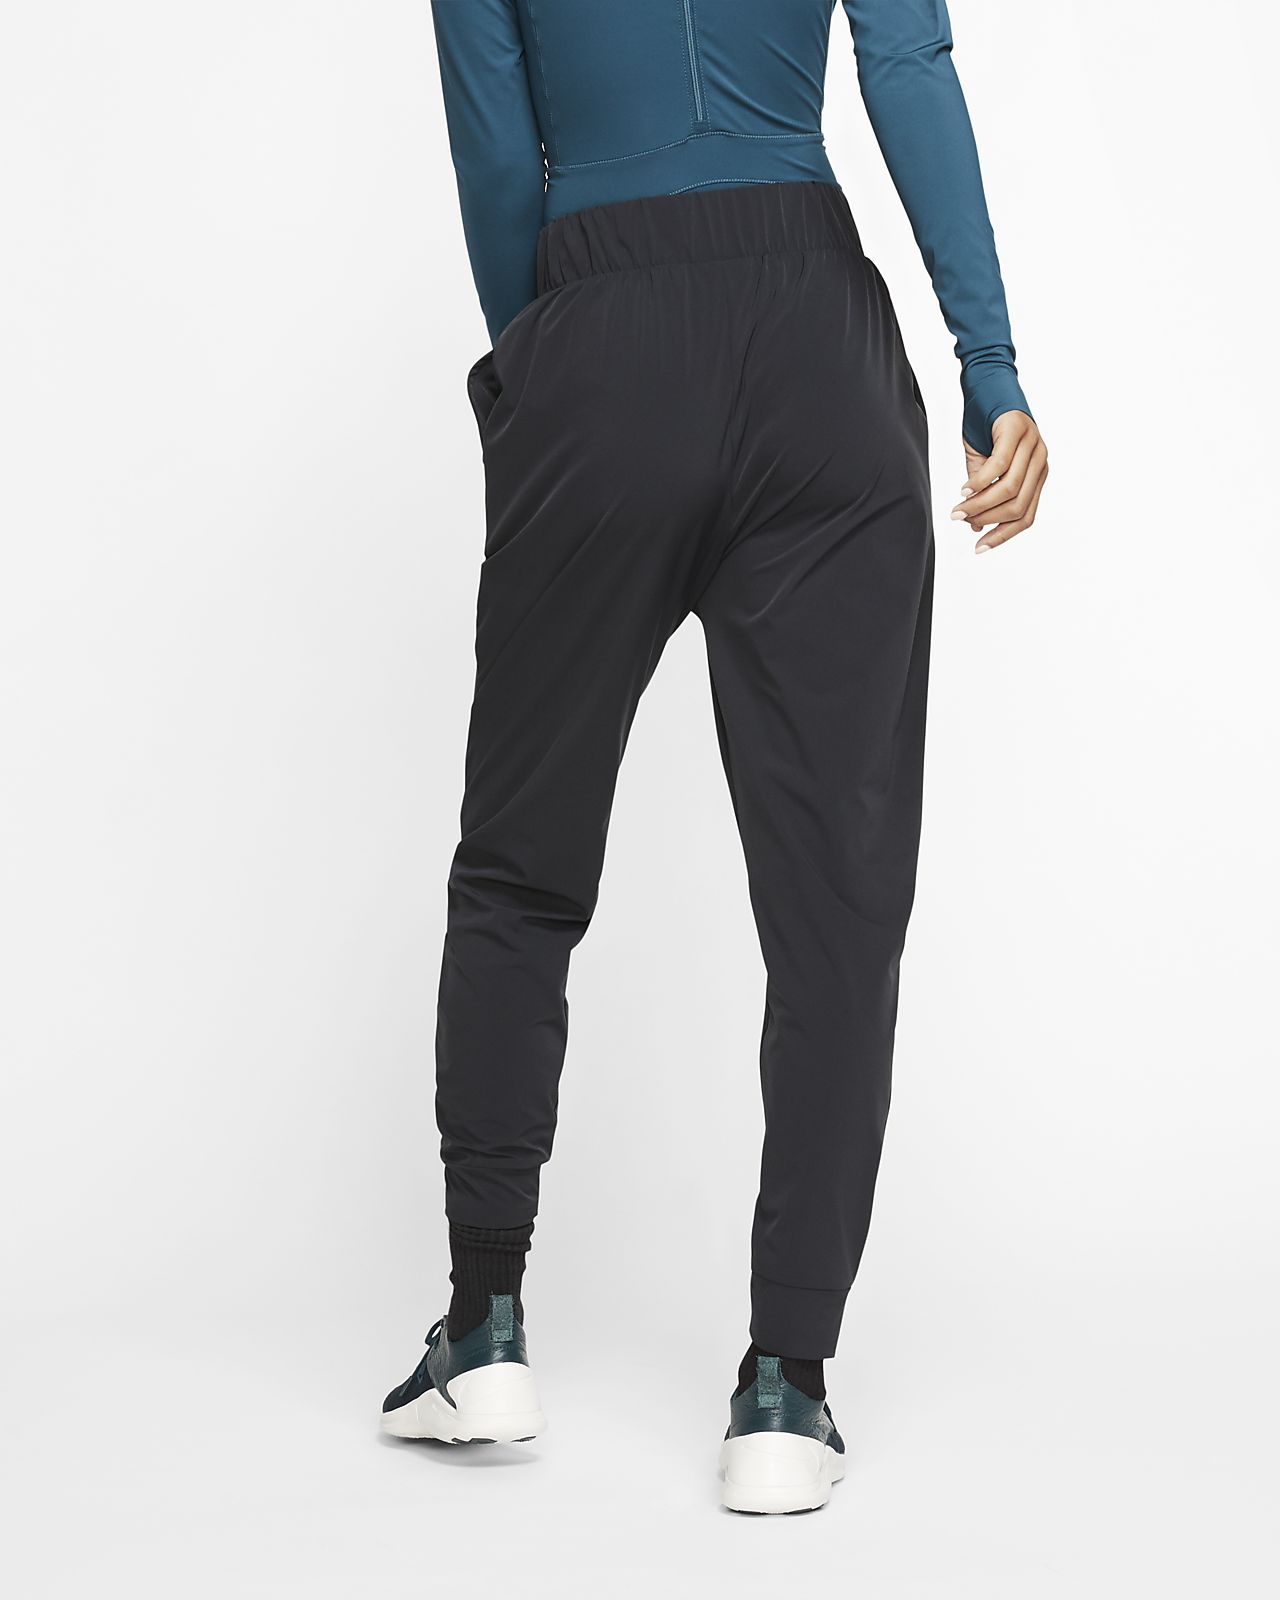 56521c81482a Low Resolution Nike Bliss Women s Trousers Nike Bliss Women s Trousers